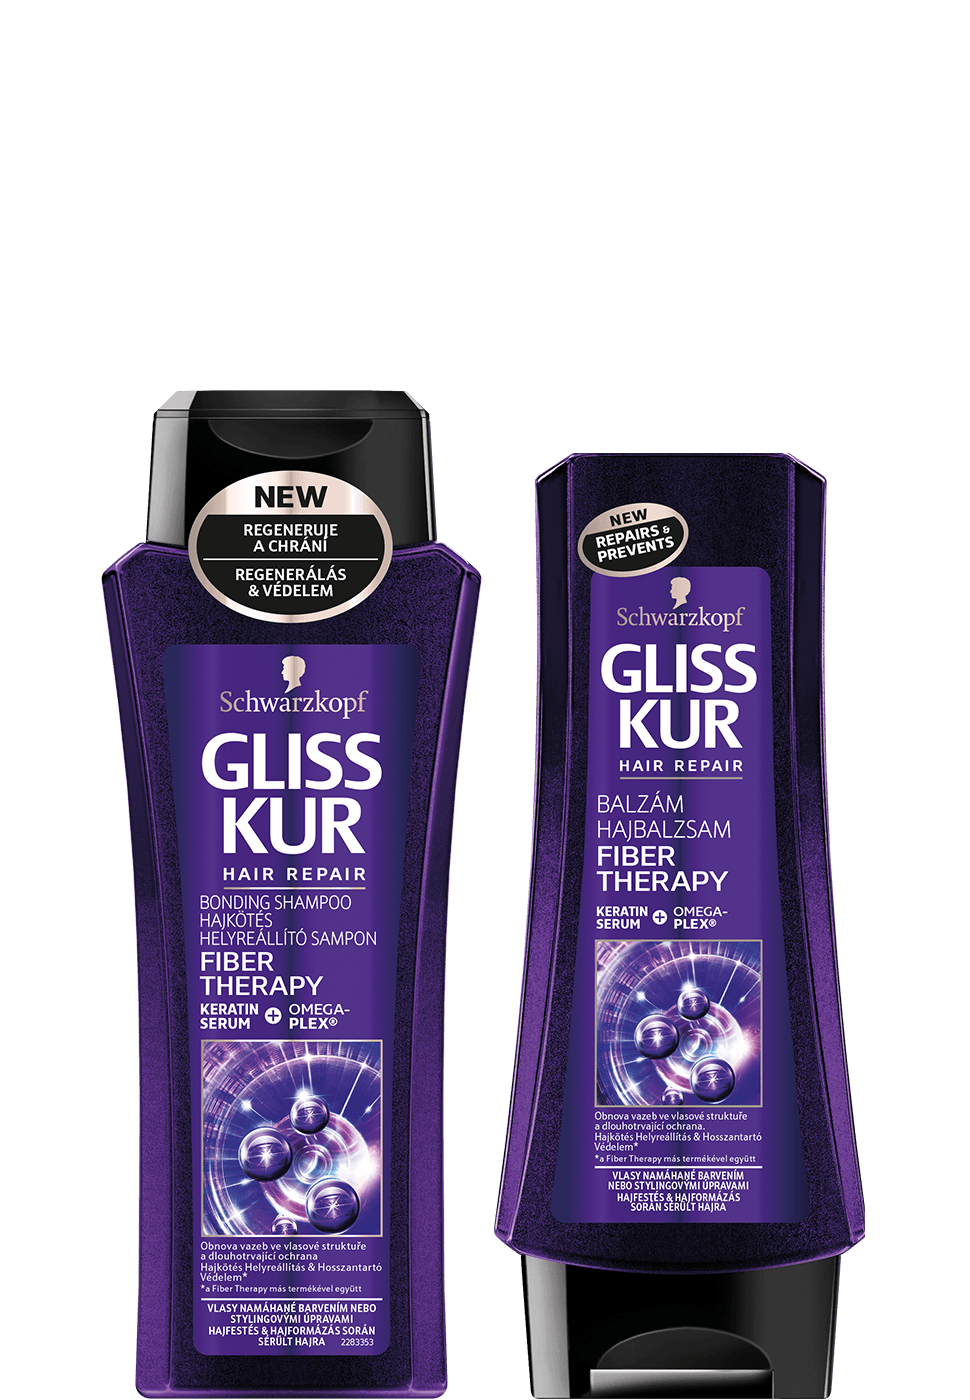 gliss_kur_de_fiber_therapy_packs_970x1400